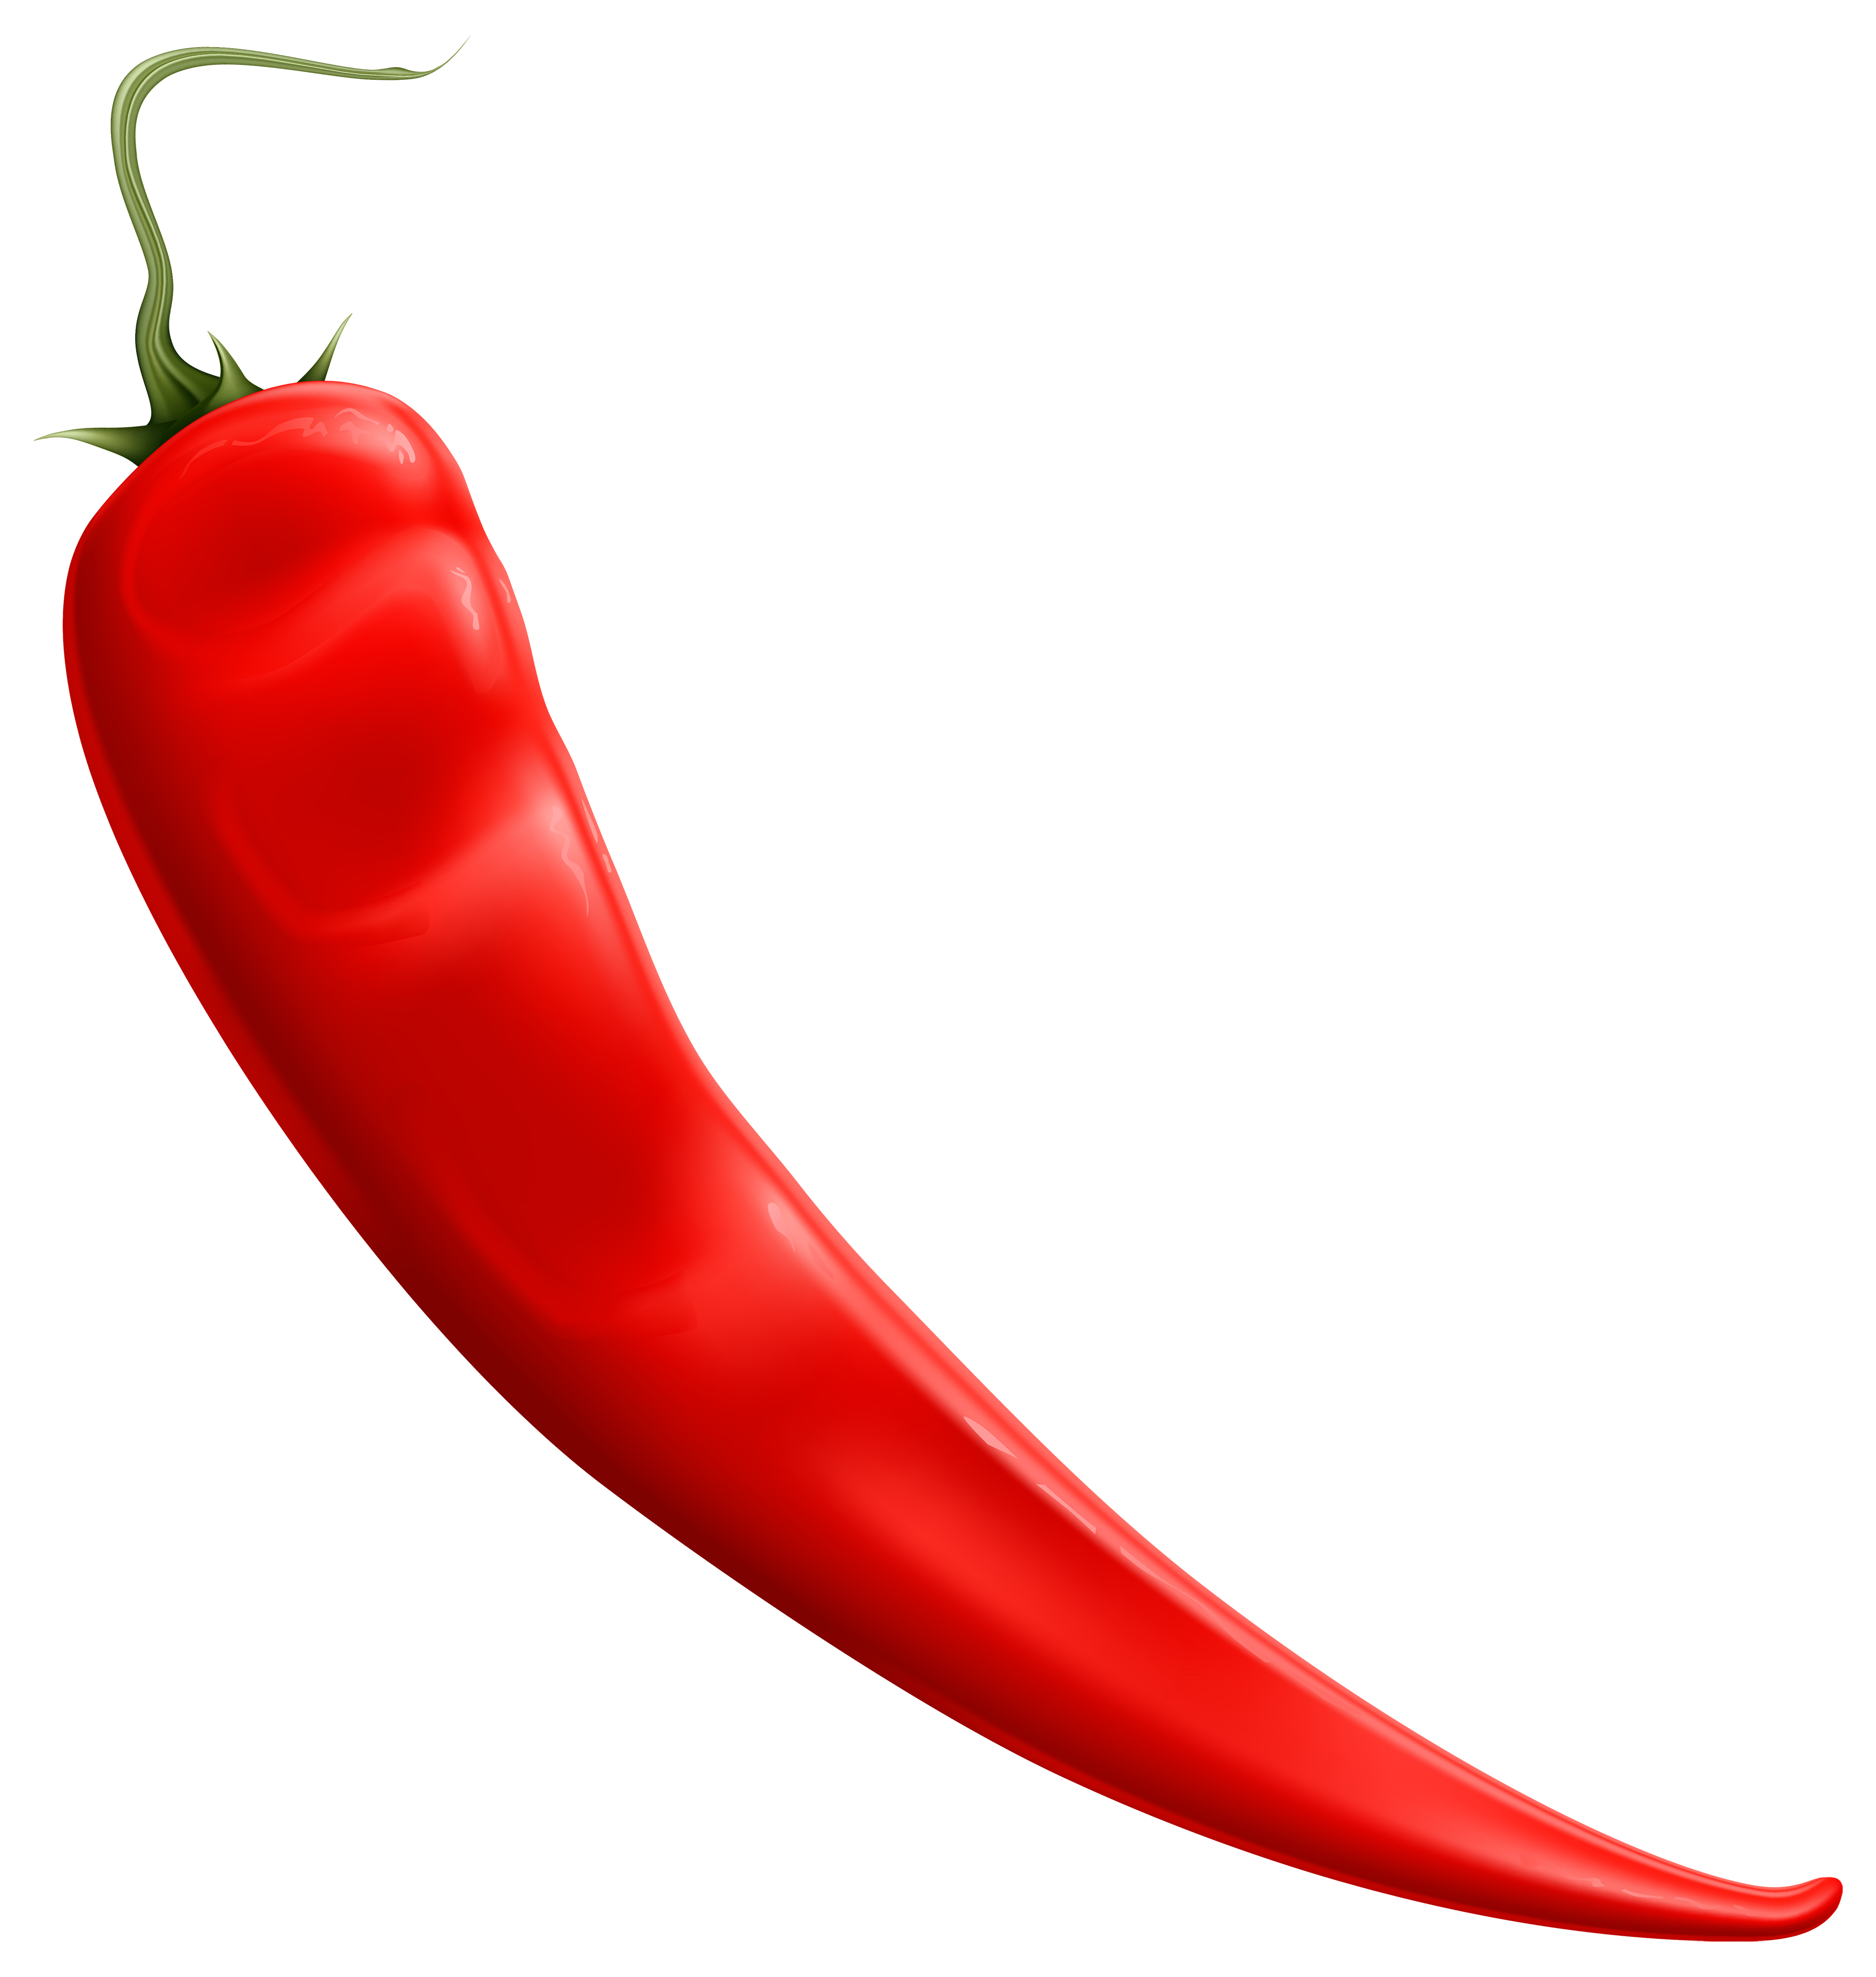 Red chili pepper png. Peppers clipart graphic free stock